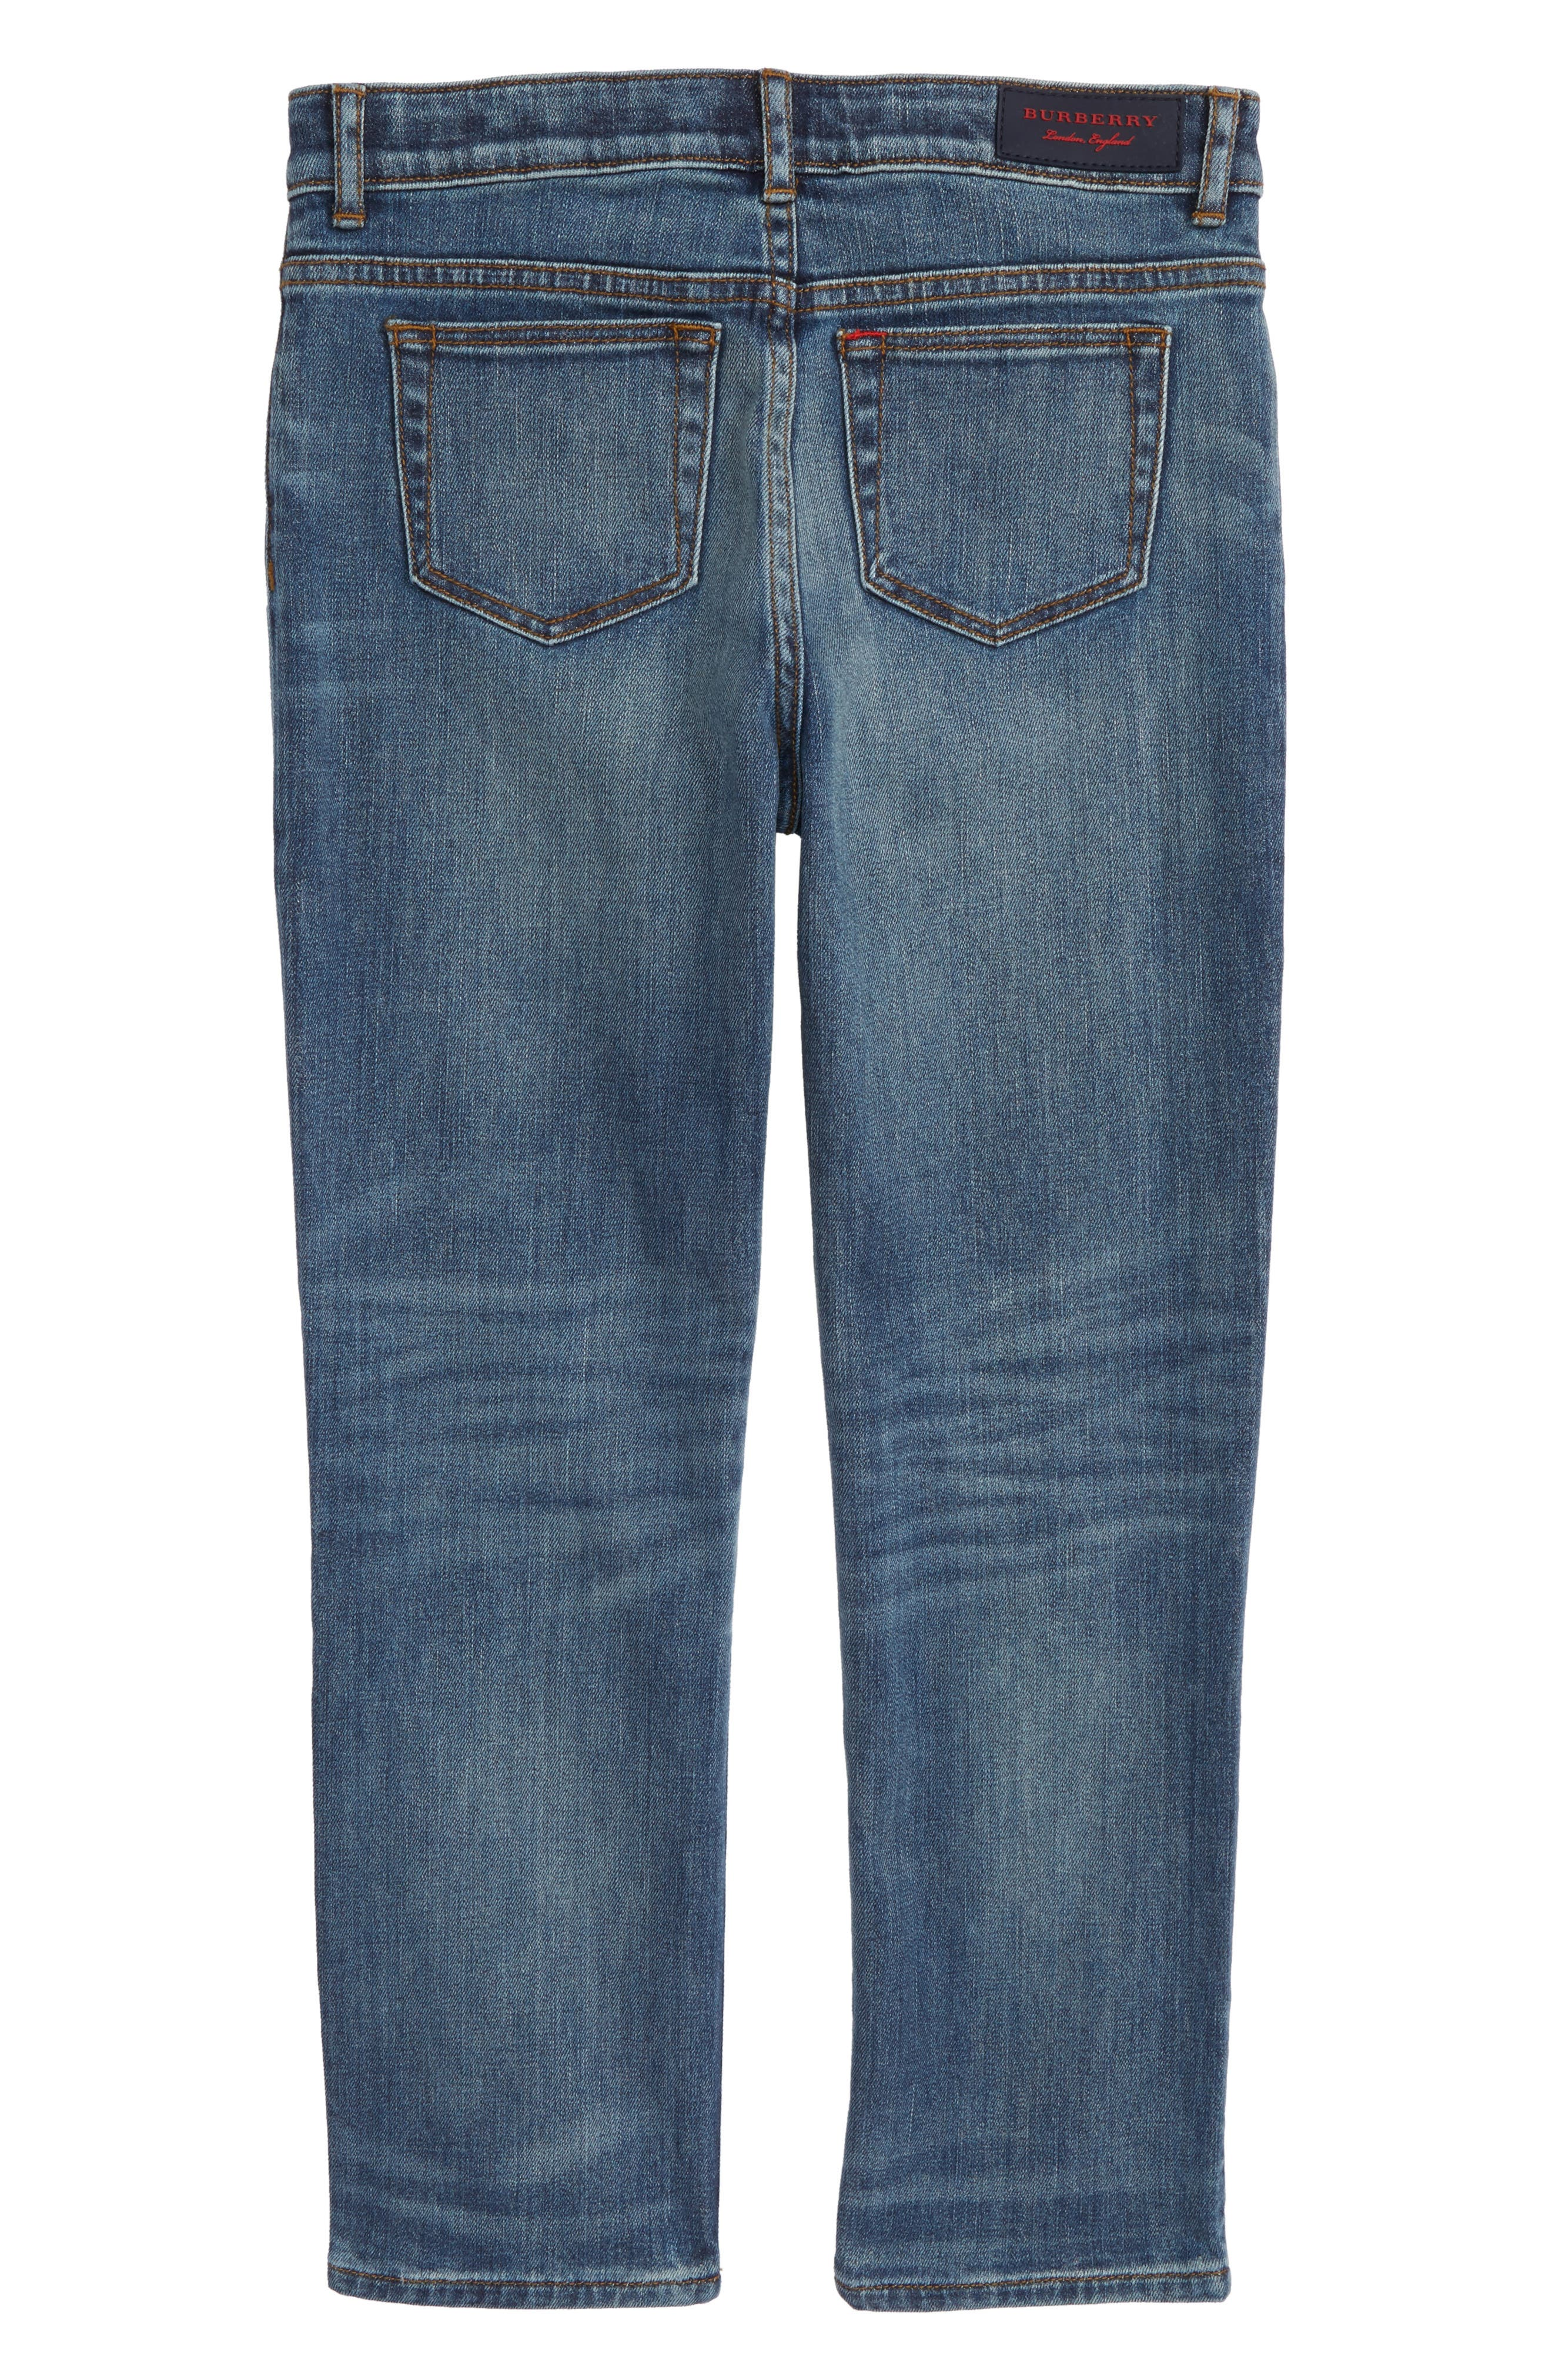 Relaxed Fit Jeans,                             Alternate thumbnail 2, color,                             MEDIUM INDIGO